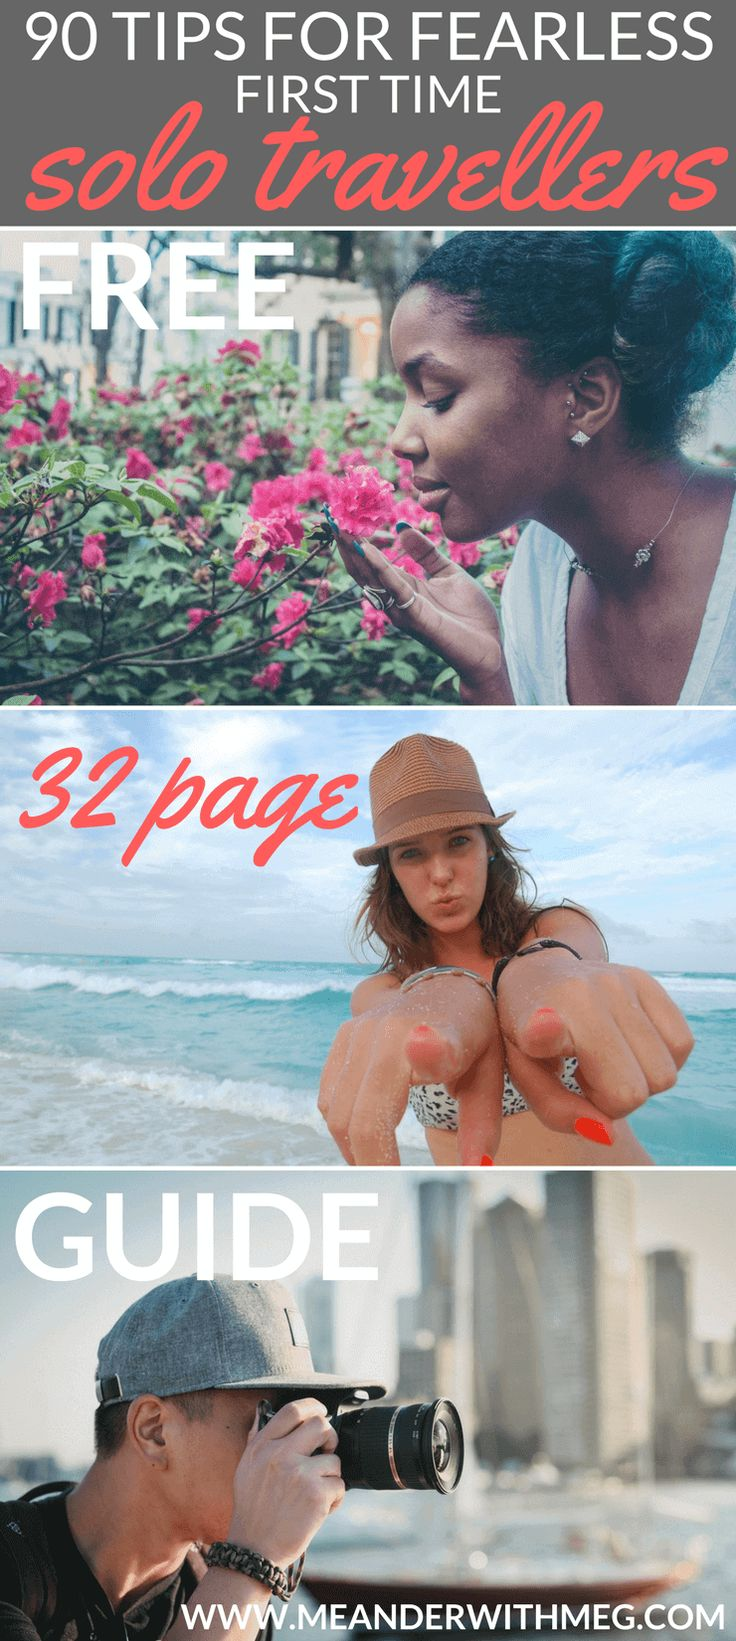 A free 32 page downloadable guide full of tips for first time solo travellers to help your first time travelling go smoothly.   Solo travel   first time travel   travel guide   travel planning   backpacking tips   solo female travel   travel preparation   travel hacks   travel tips